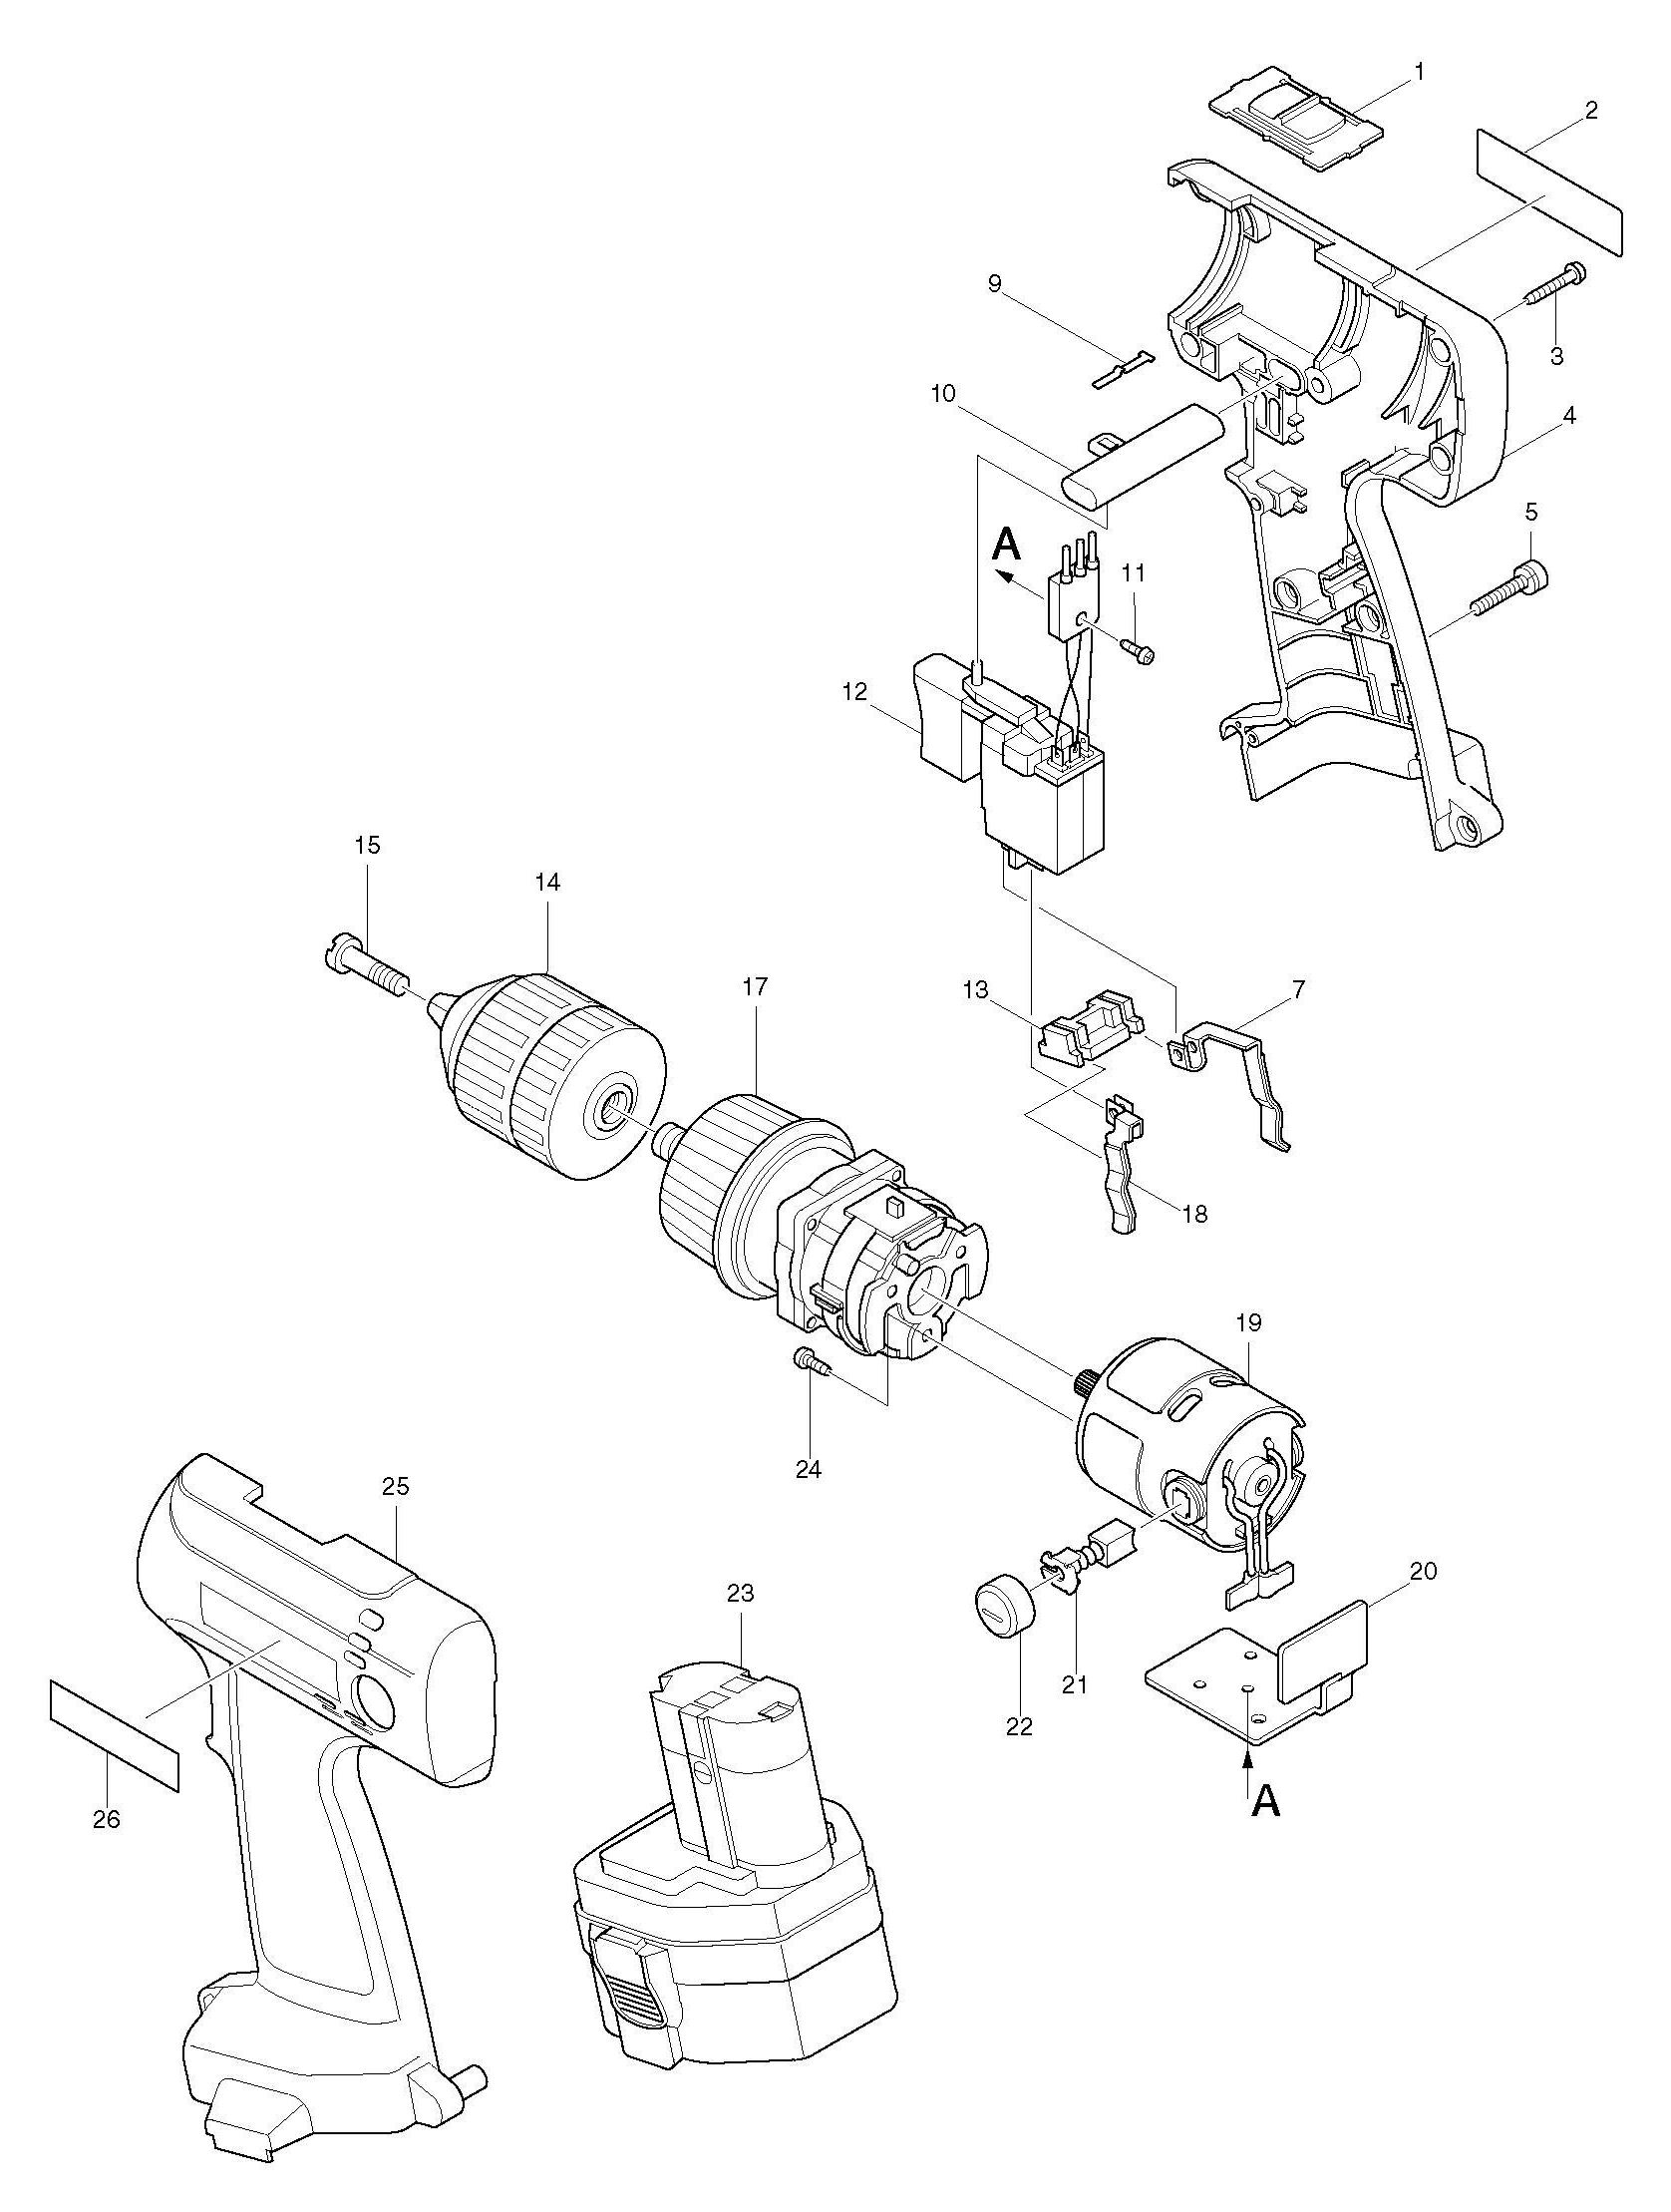 Spares for Makita 6314d Drill/driver SPARE_6314D from